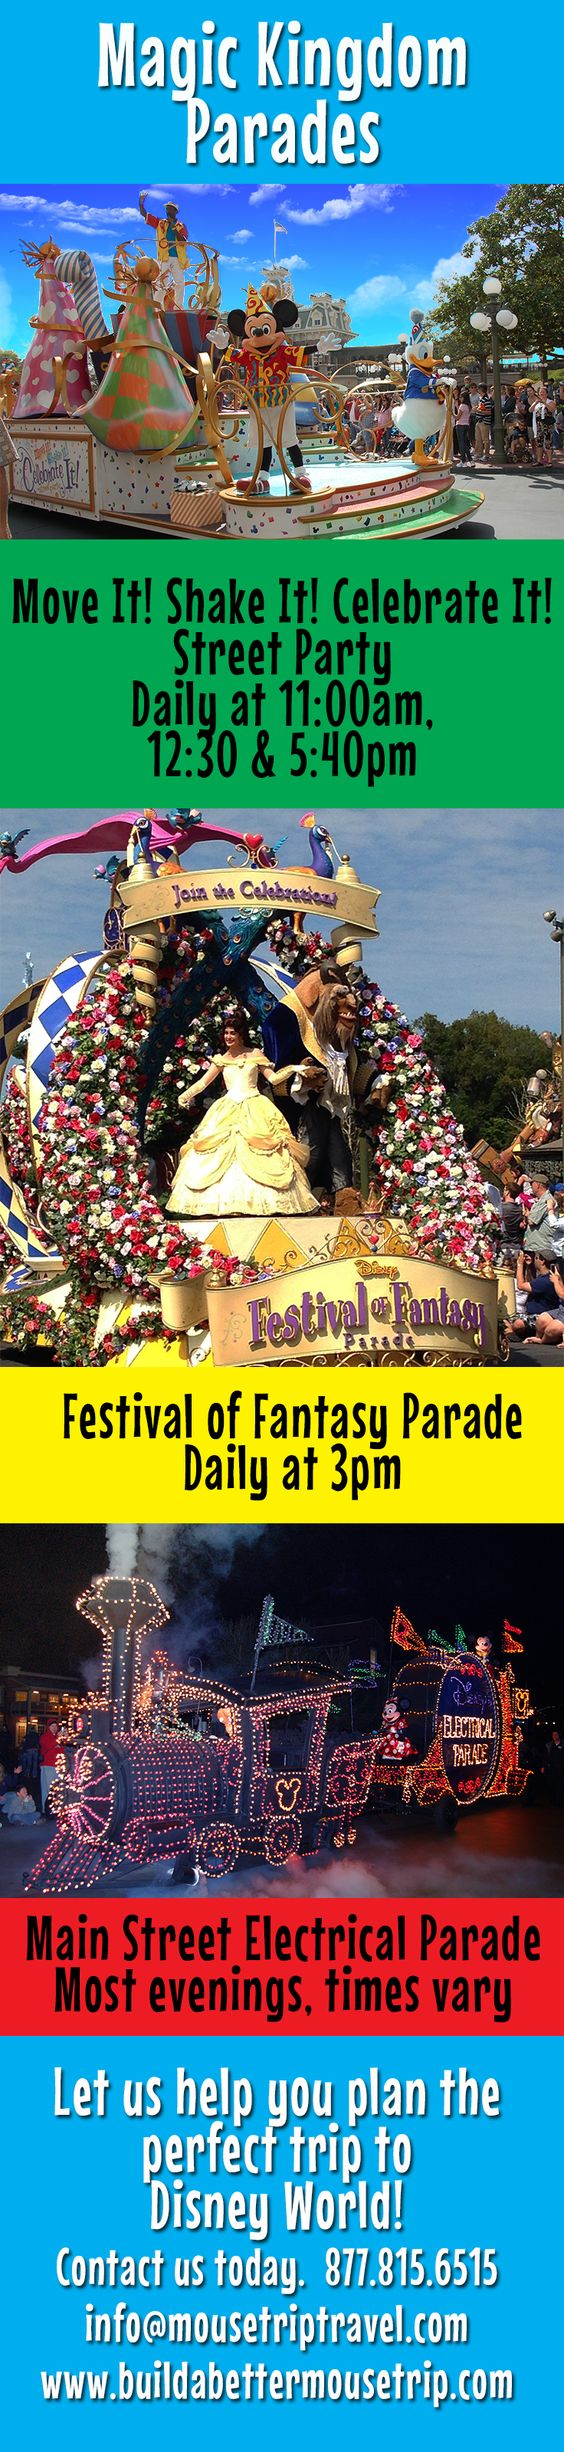 """Magic Kingdom Parade schedule - #Disney World.  Includes """"Move It!, Shake It! Celebrate It!"""", Festival of Fantasy afternoon parade and the Main Street Electrical Parade.  Check Magic Kingdom Times Guide (found near the park maps) for exact schedule during your trip.   For Disney World ride closures, crowd warnings, and special event information, see: http://www.buildabettermousetrip.com/crowds-closures-special-events/ #FestivalofFantasy"""